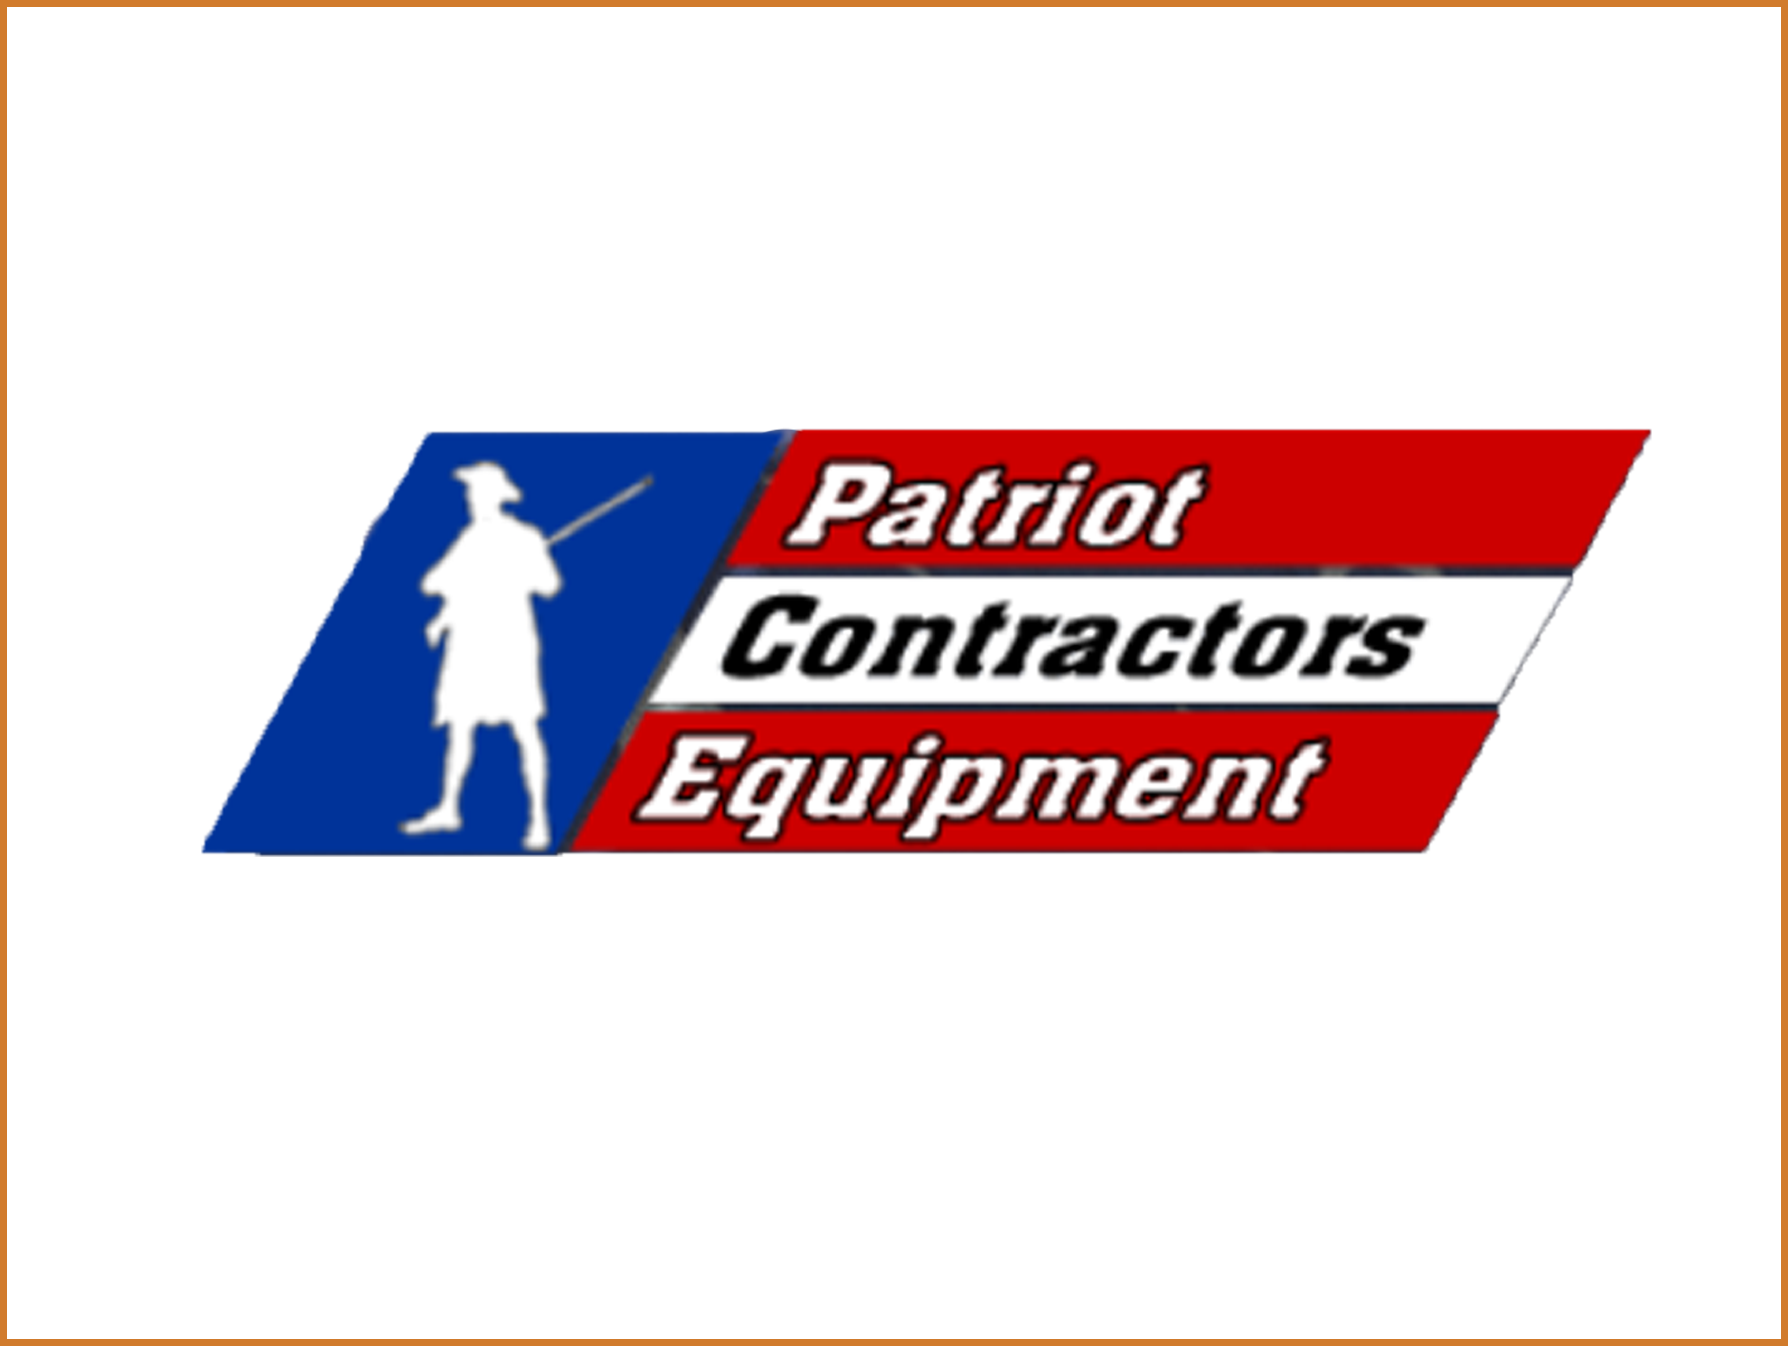 Patriot Contractors Equipment - Patriot Equipment will work hard to save you money and we welcome a phone call or email on your equipment purchase inquiries with our 25 plus years construction experience to assist you. Whether a municipality, military or contractor… let us work up a quote and show you what so many others are saying about Patriot Contractors Equipment's pride in building relationships with our valued customers.https://www.patriotequipment.us/